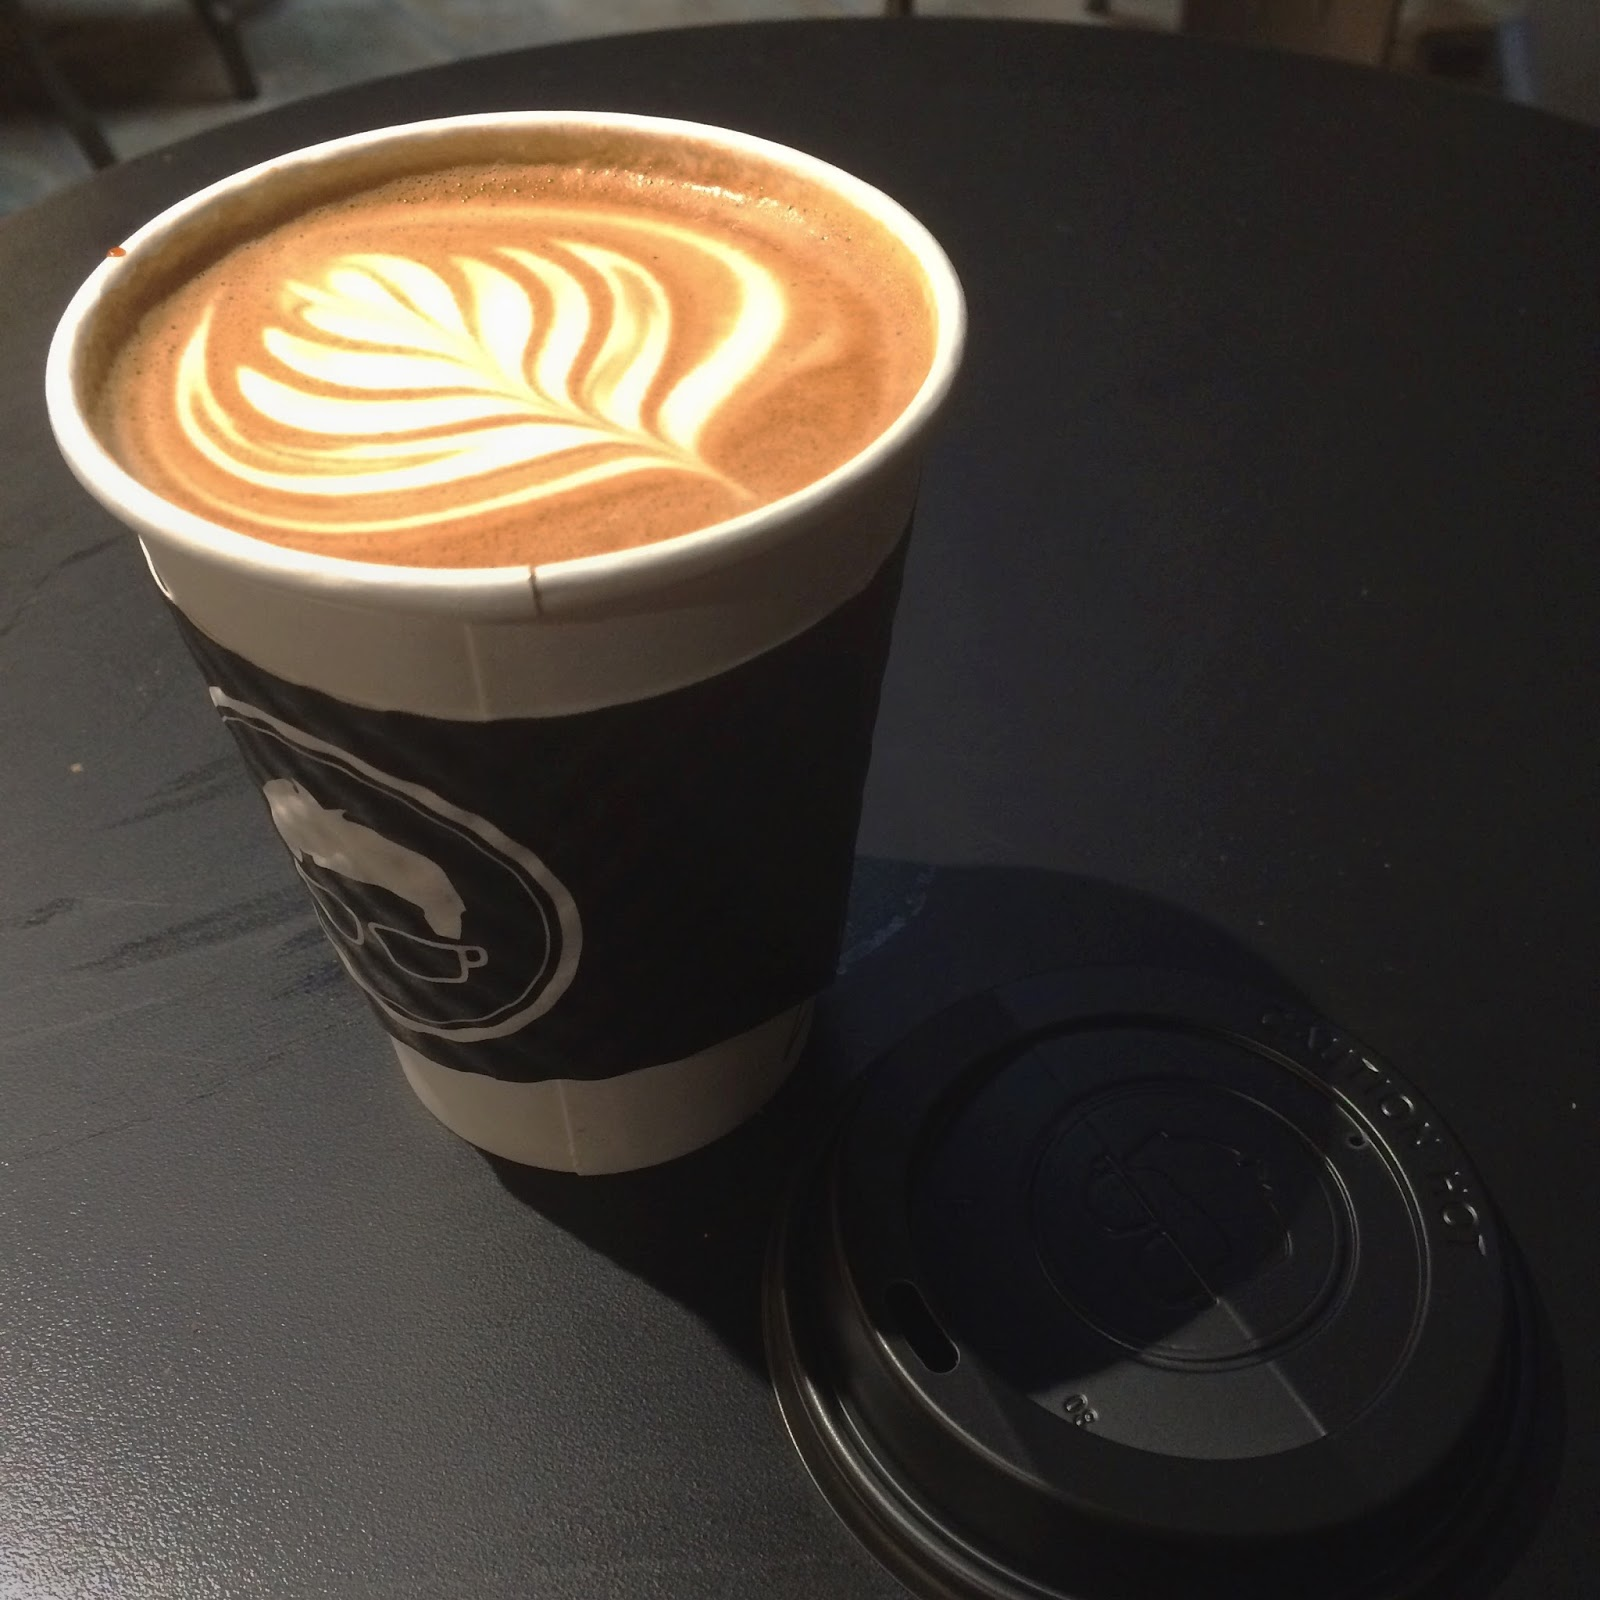 gregory's latte